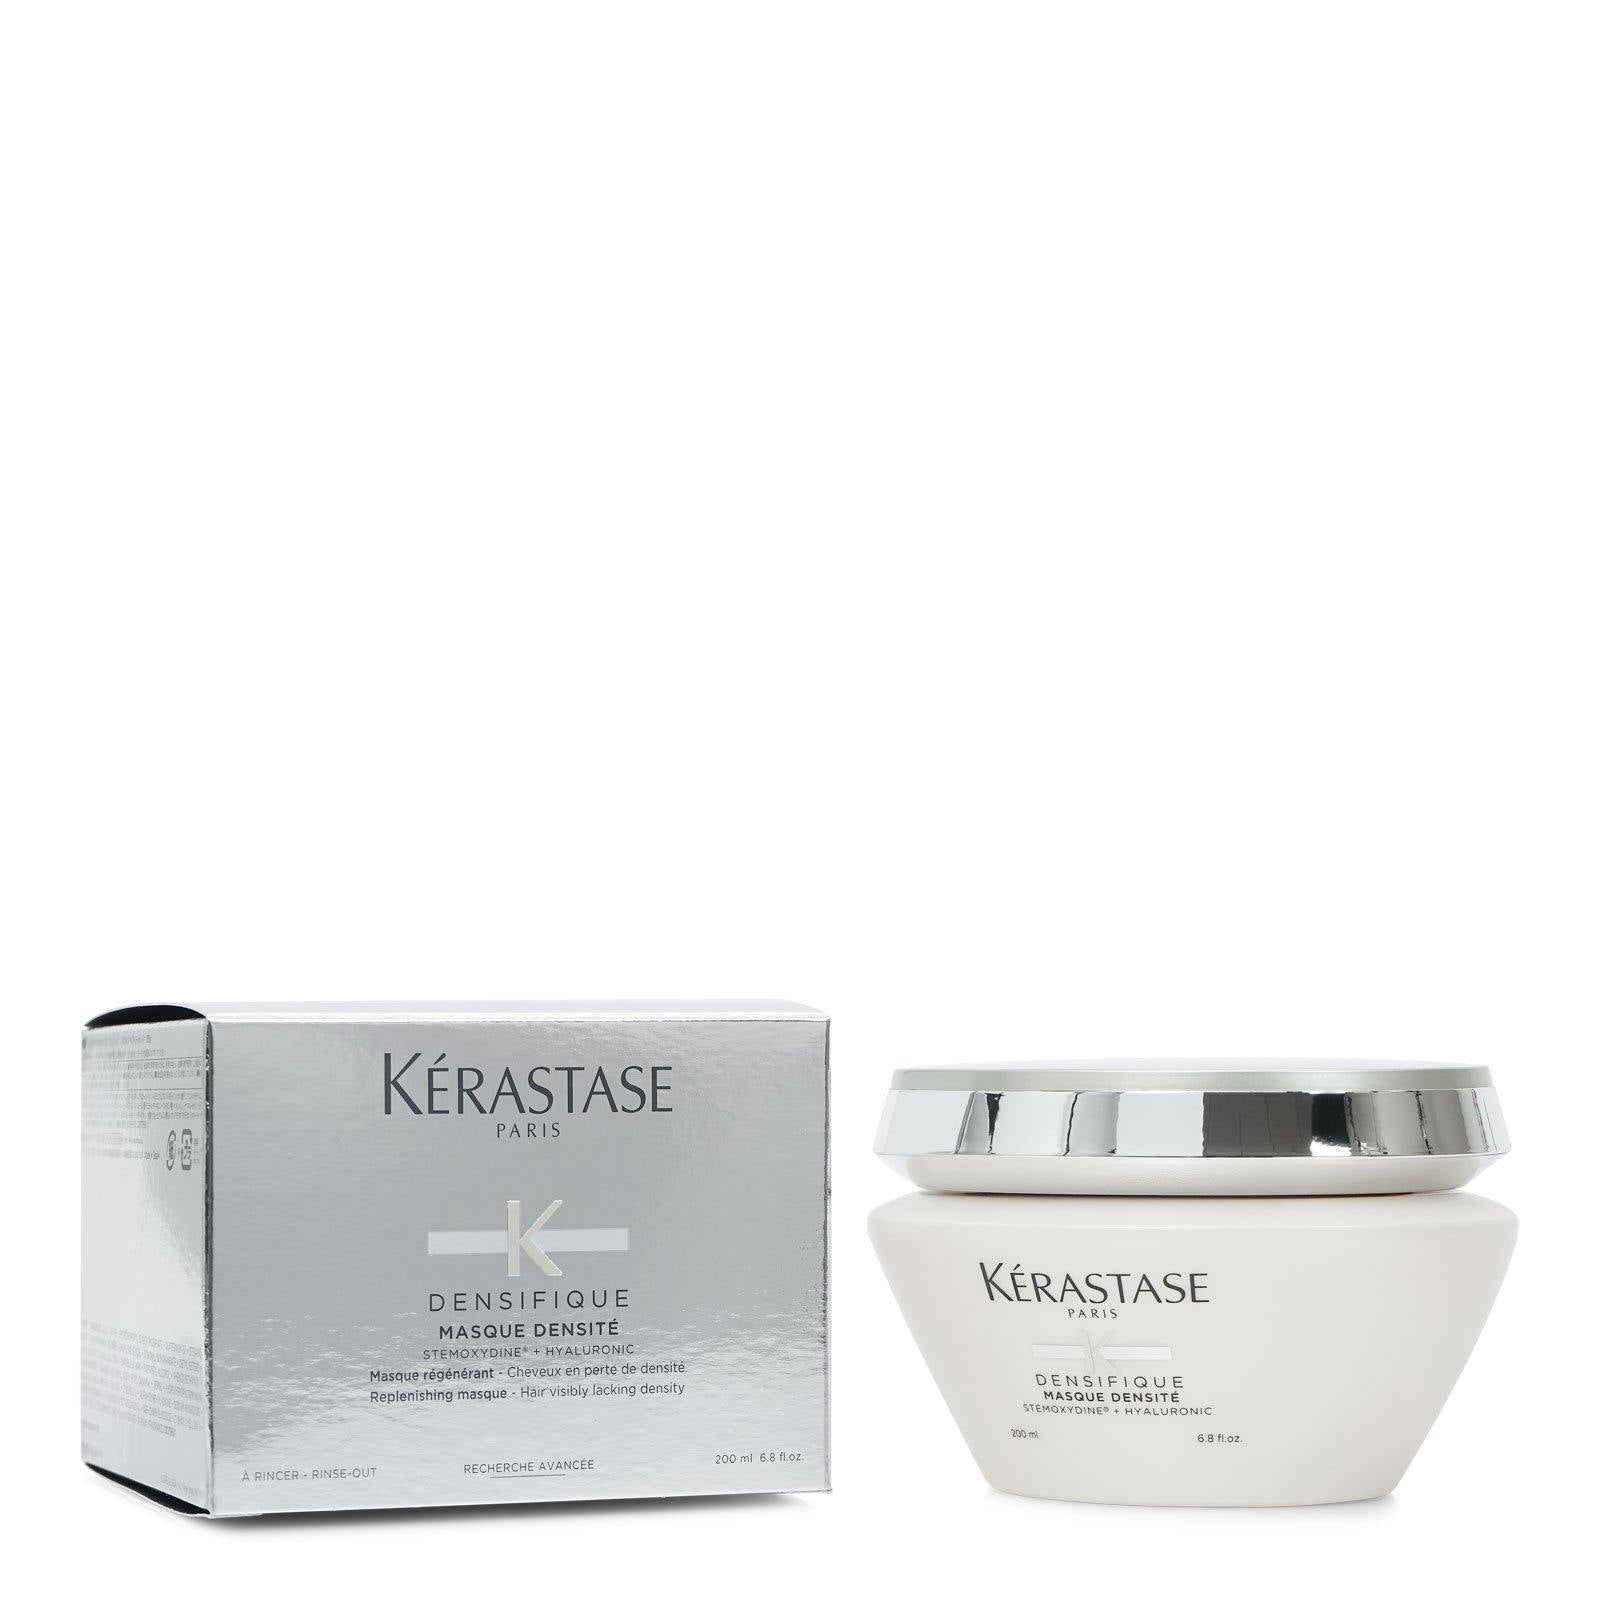 Kerastase Densifique Masque Densite Replenishing Masque (6/cs)